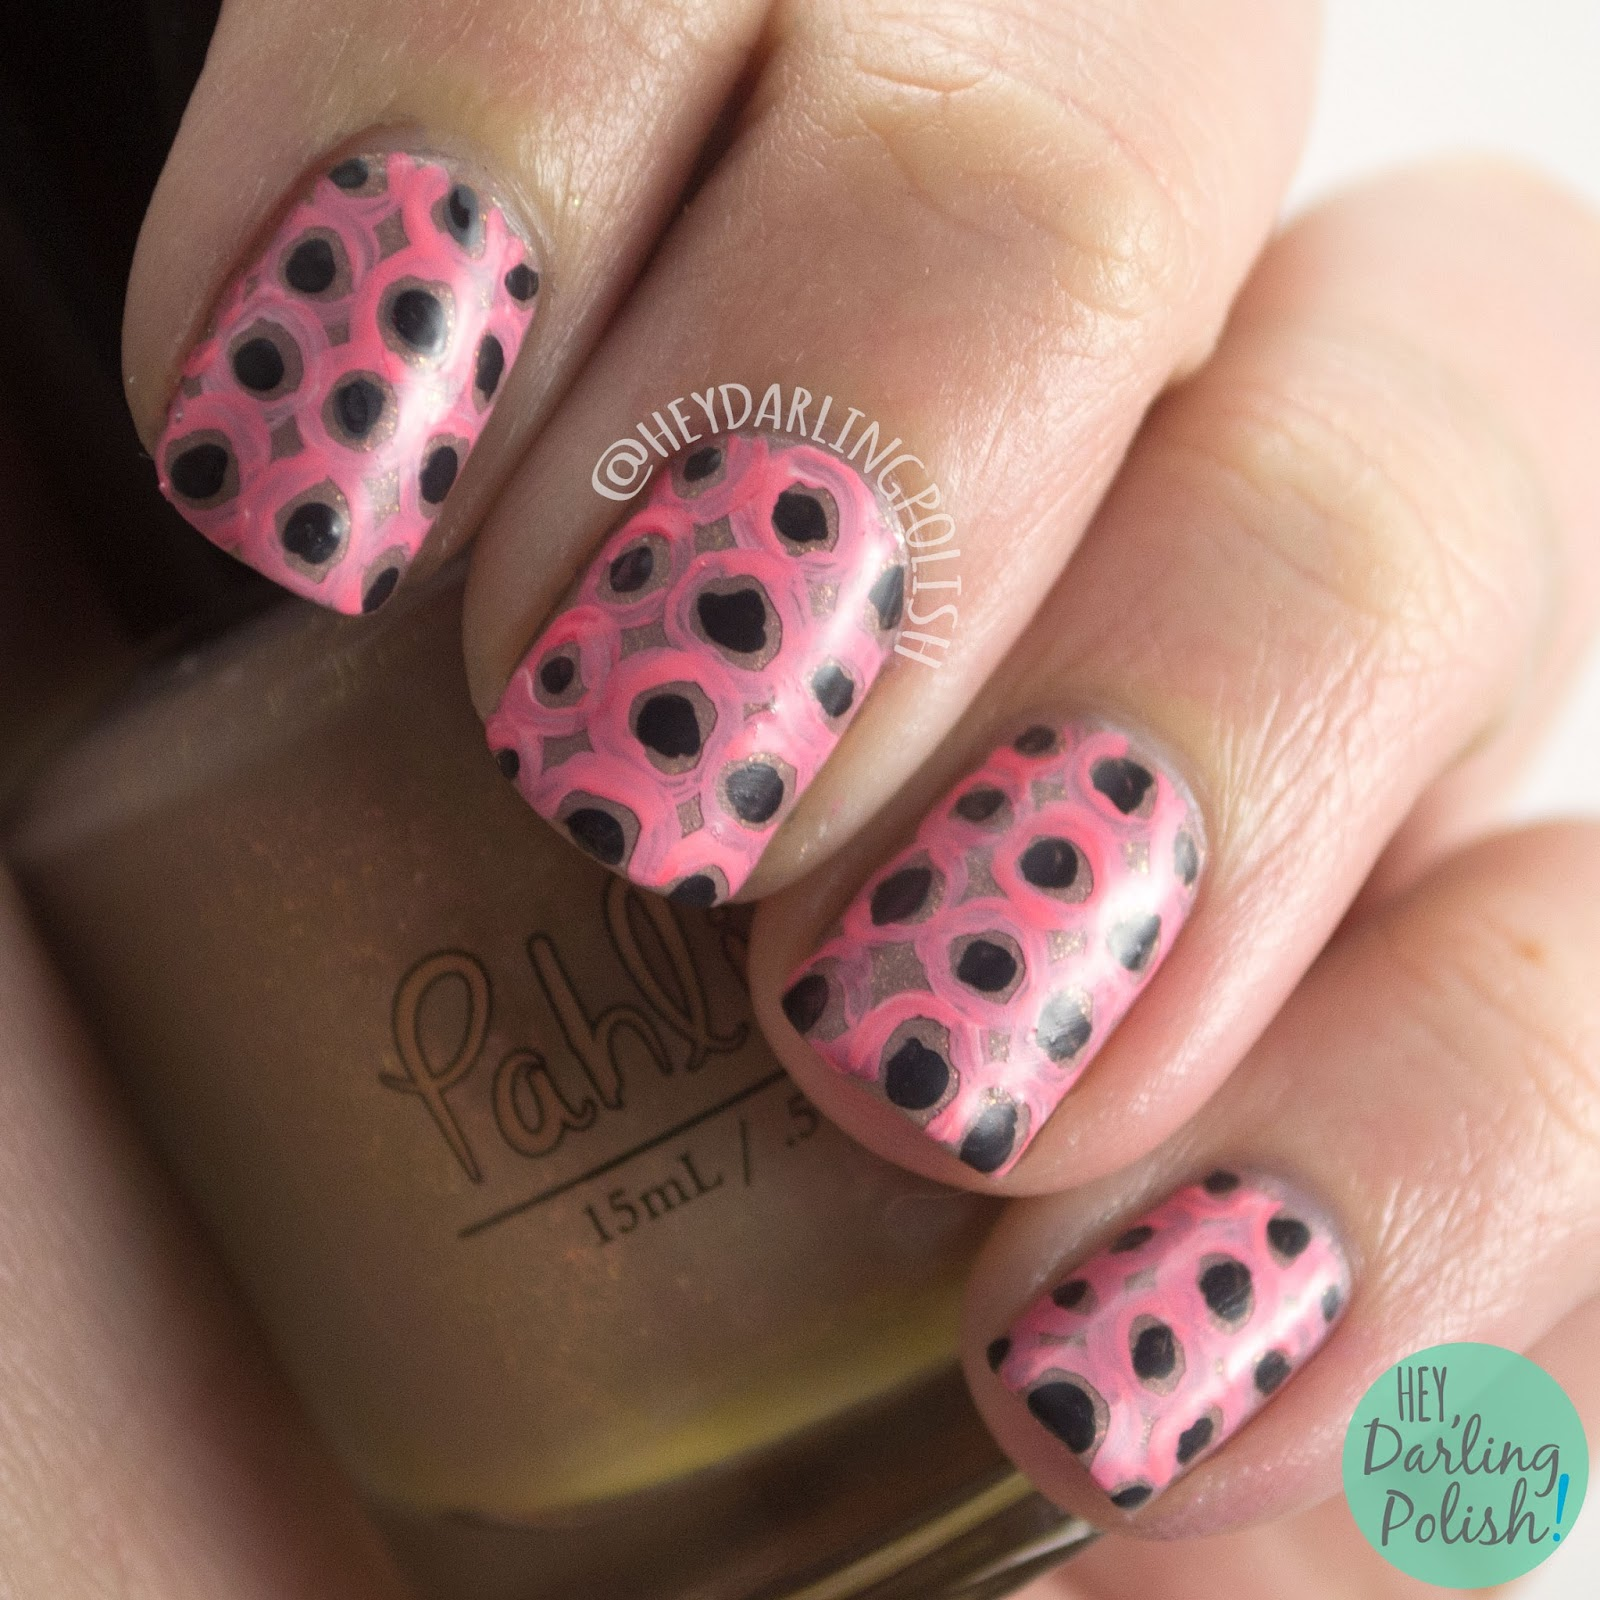 nails, nail art, nail polish, polka dots, dots, pink, hey darling polish, pattern, the nail challenge collaborative